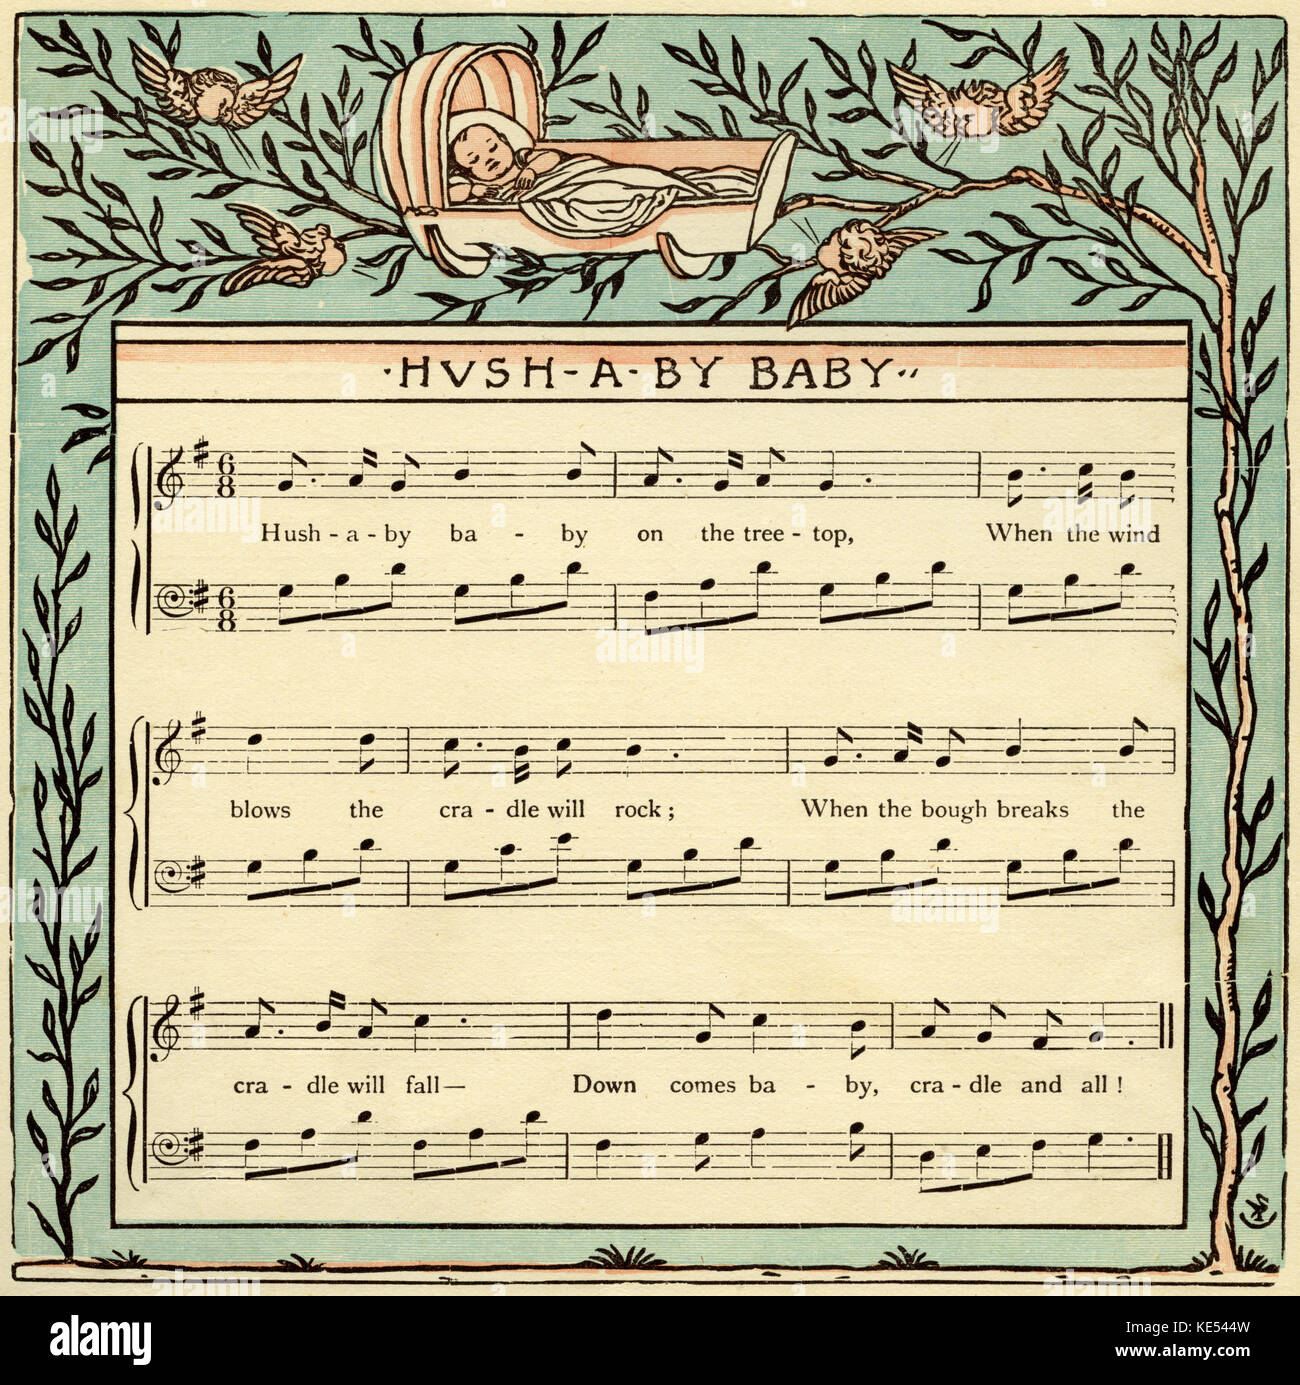 Hush a bye baby, nursery rhyme score, illustration (1877) by Walter Crane. English artist of Arts and Crafts movement, - Stock Image